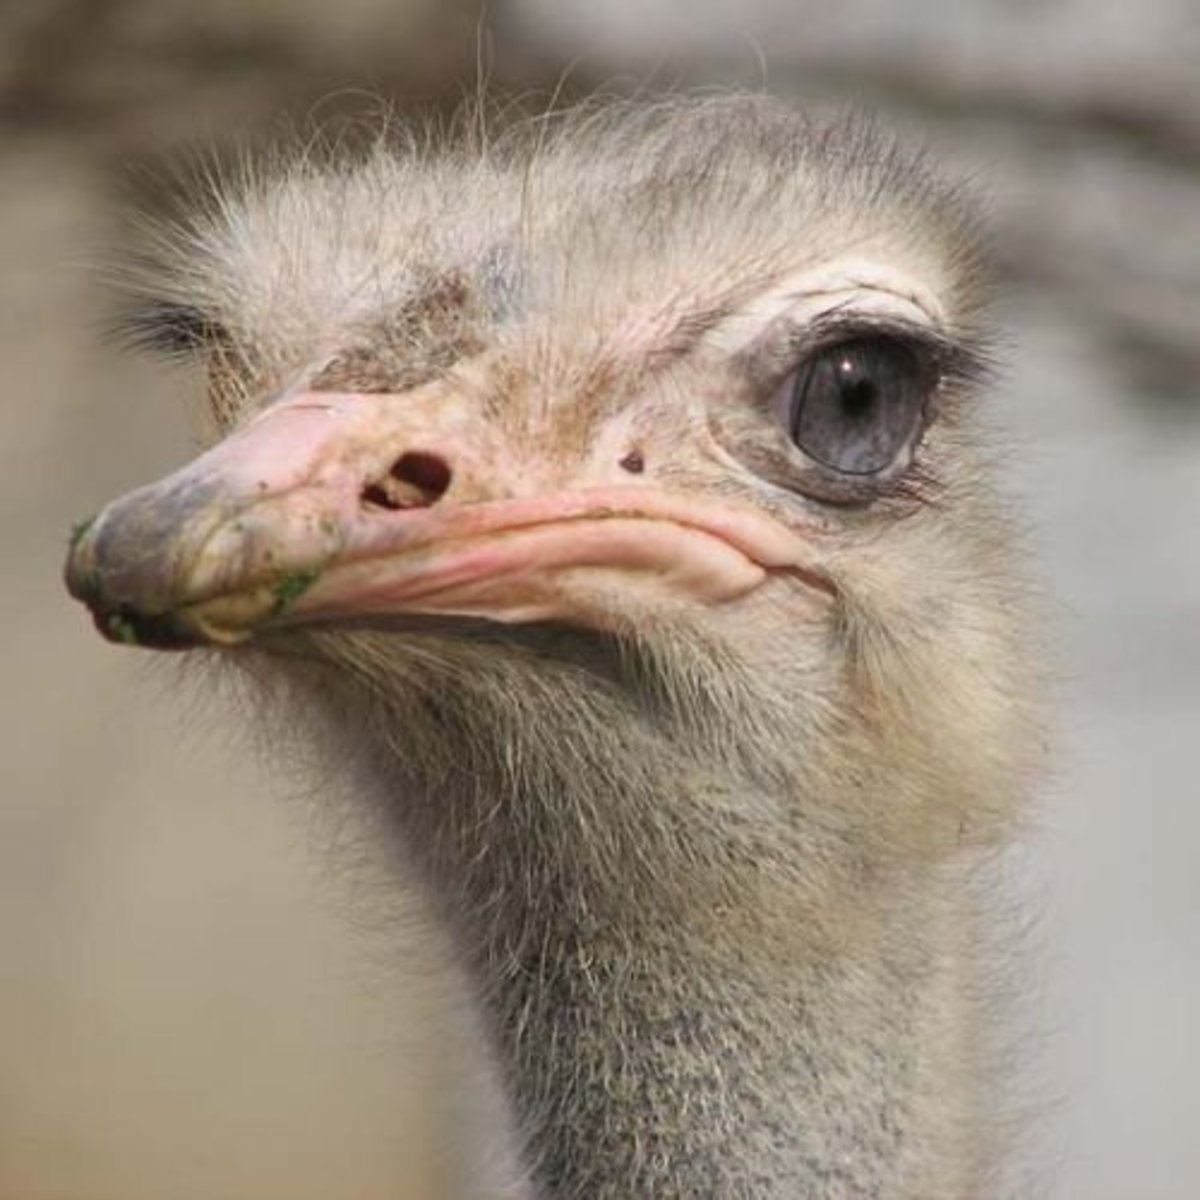 If you name your pet frog Ostrich, she can be called Ostrich the Frog.